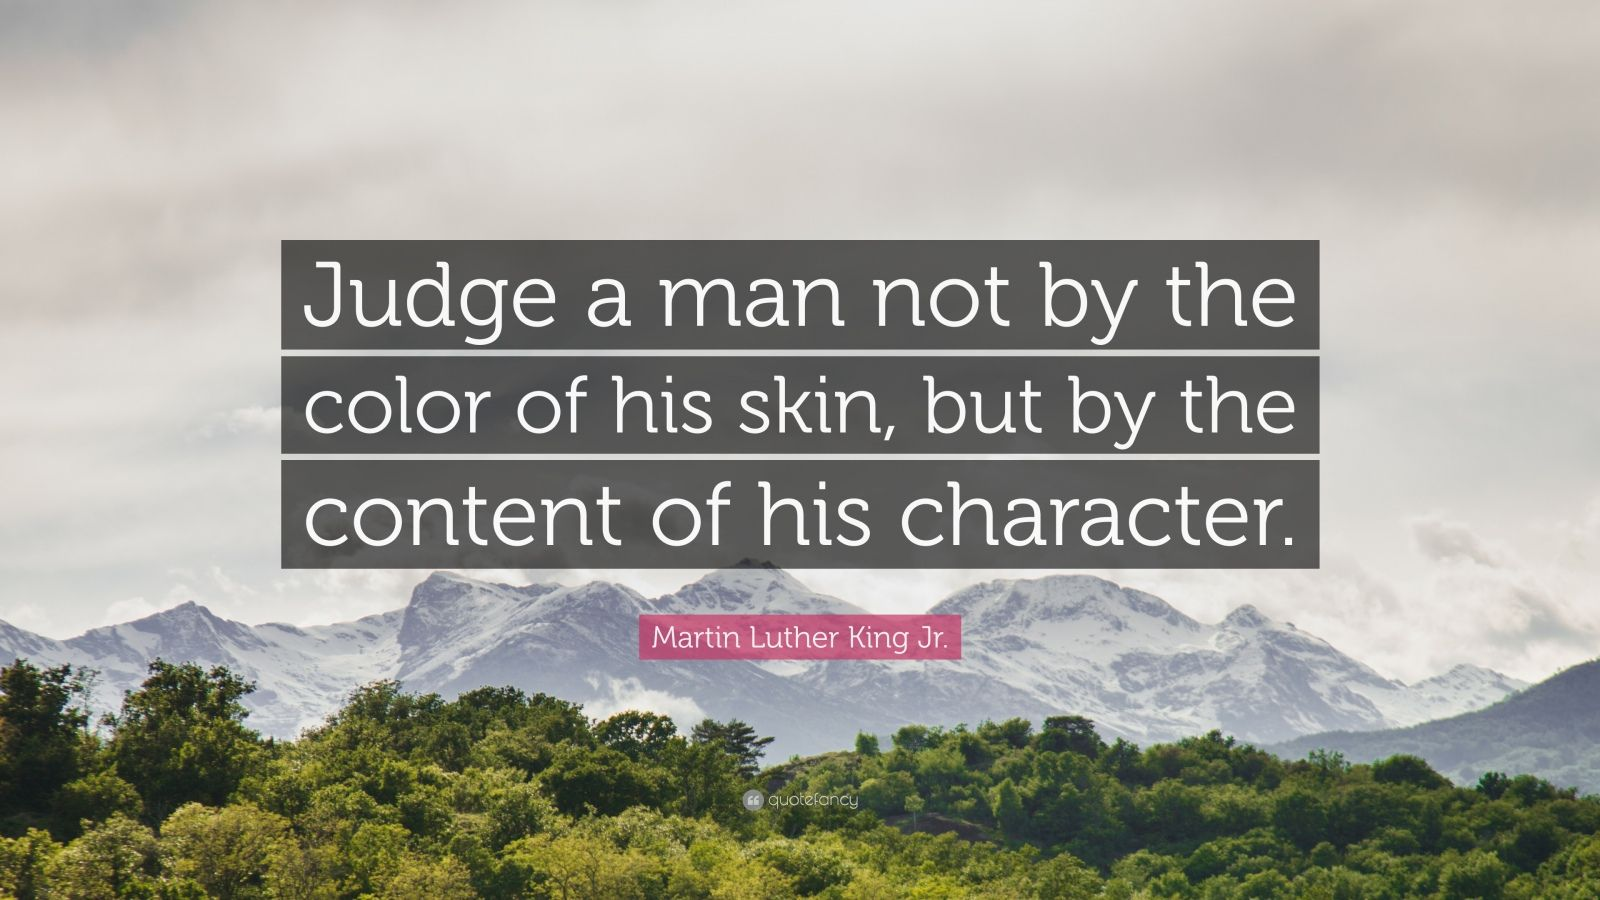 """Martin Luther King Jr. Quote: """"Judge a man not by the color of his skin, but by the content of his character."""""""